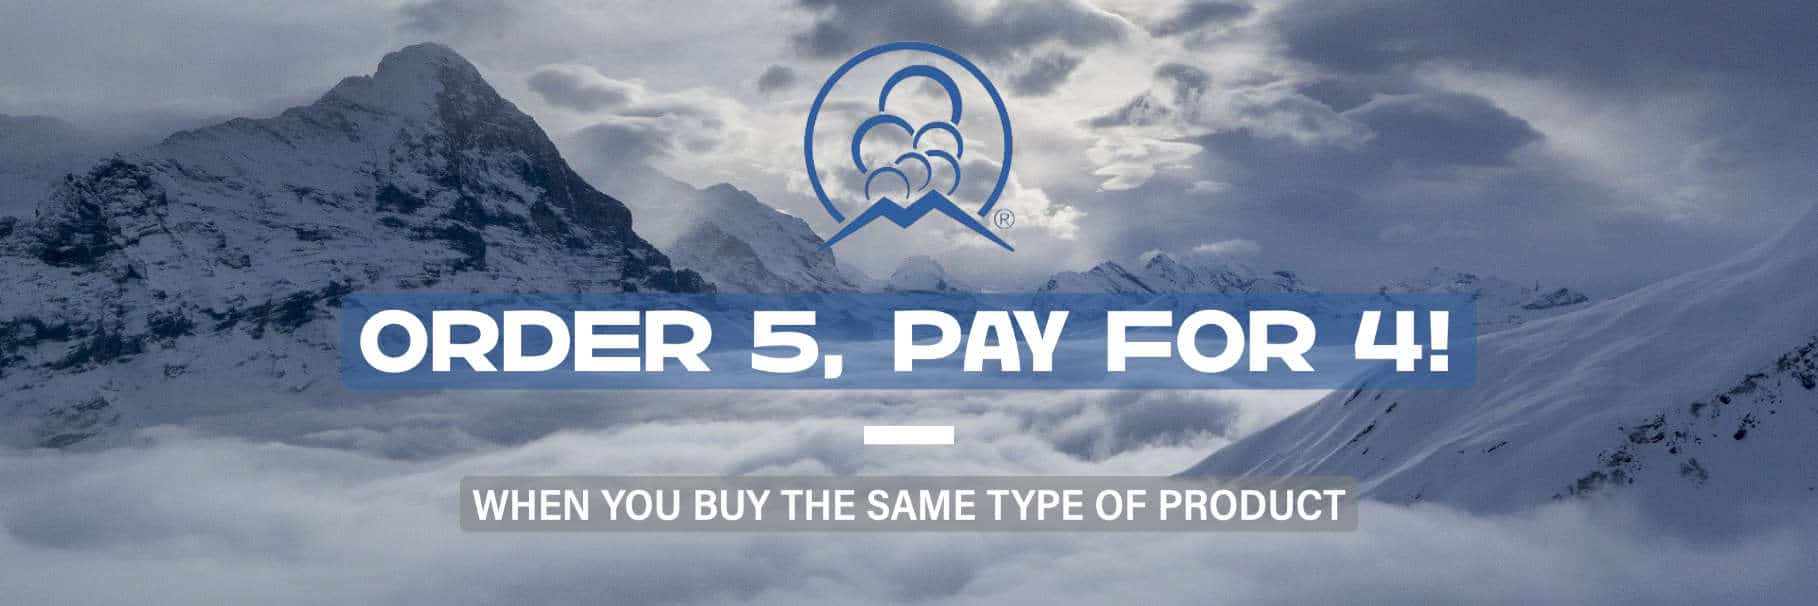 Order 5 Pay For 4 Banner